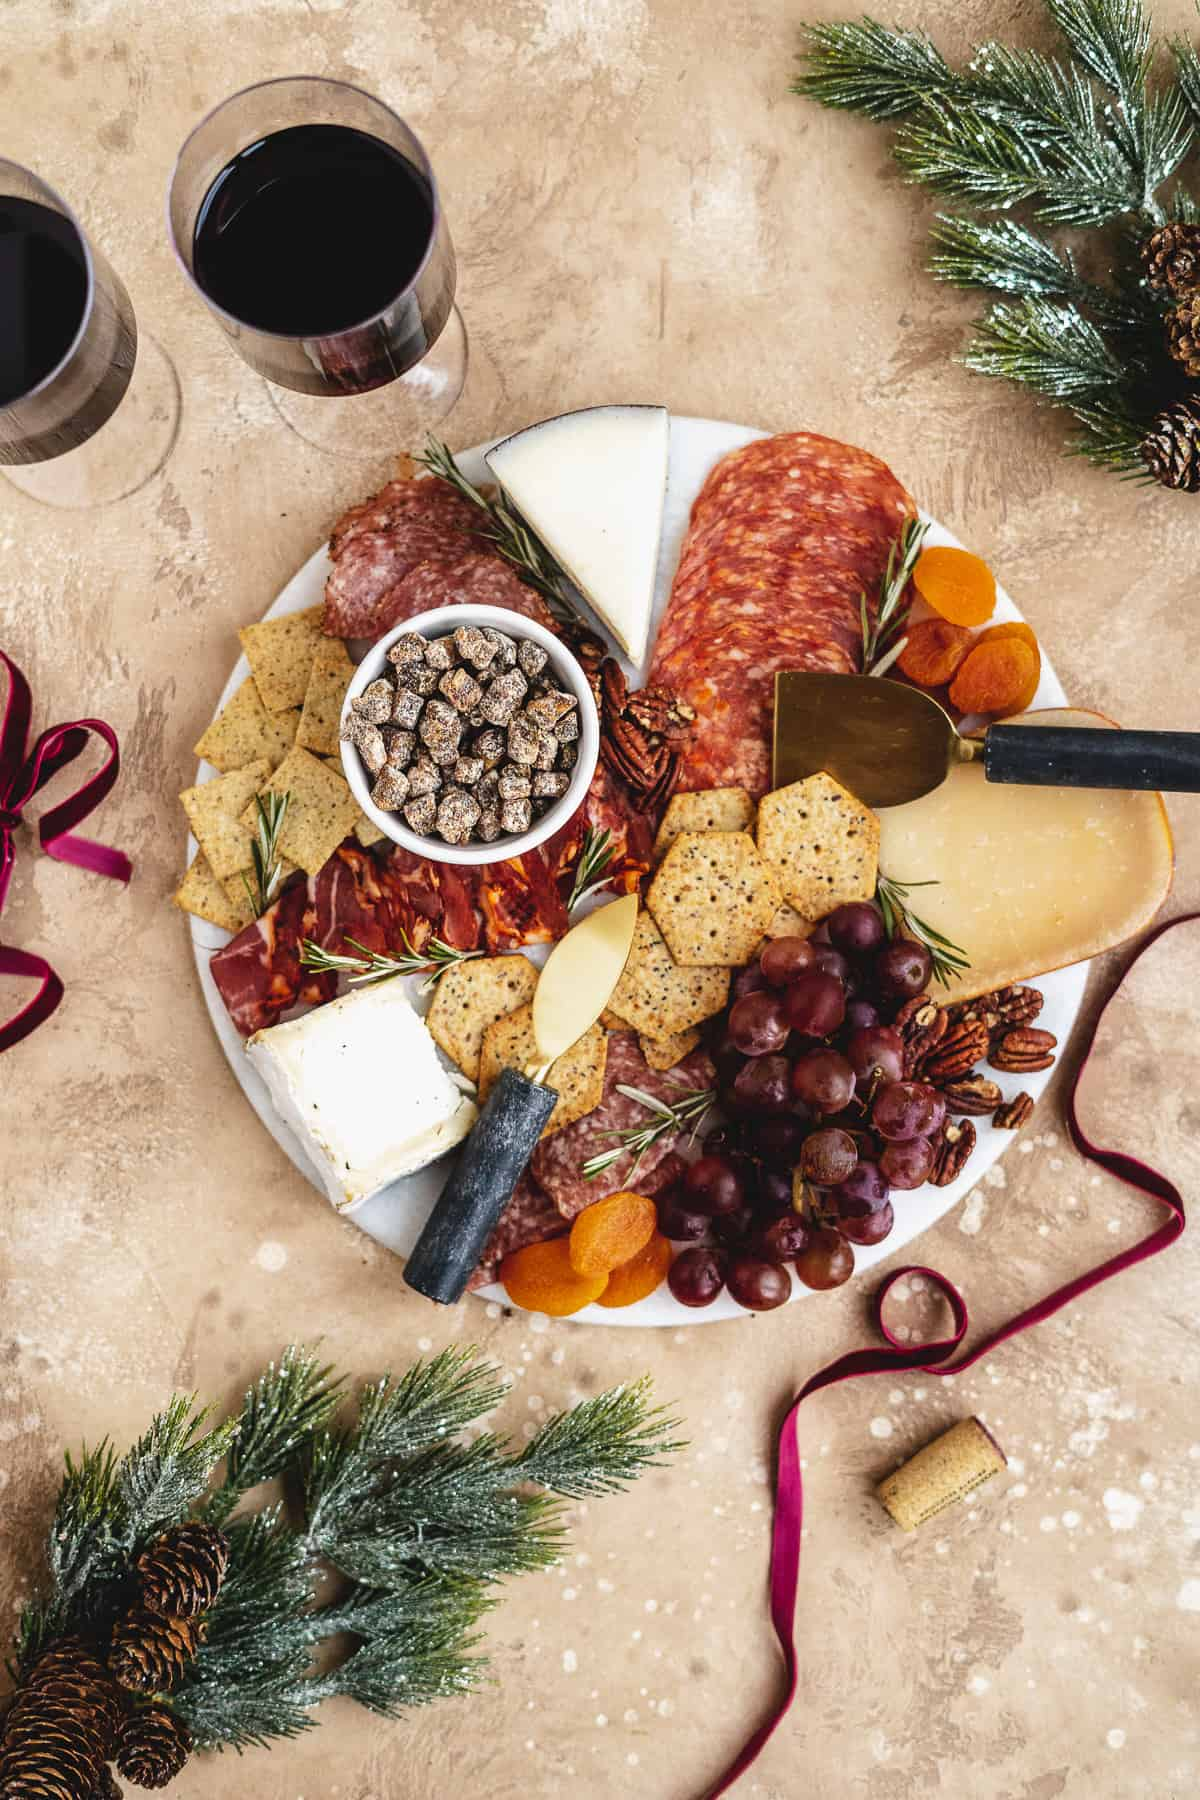 Overhead photo of round white marble slab covered with grapes, pecans, dried fruits, and assorted meats and cheeses.  Two glasses of red wine and gold cheese knives sit nearby.